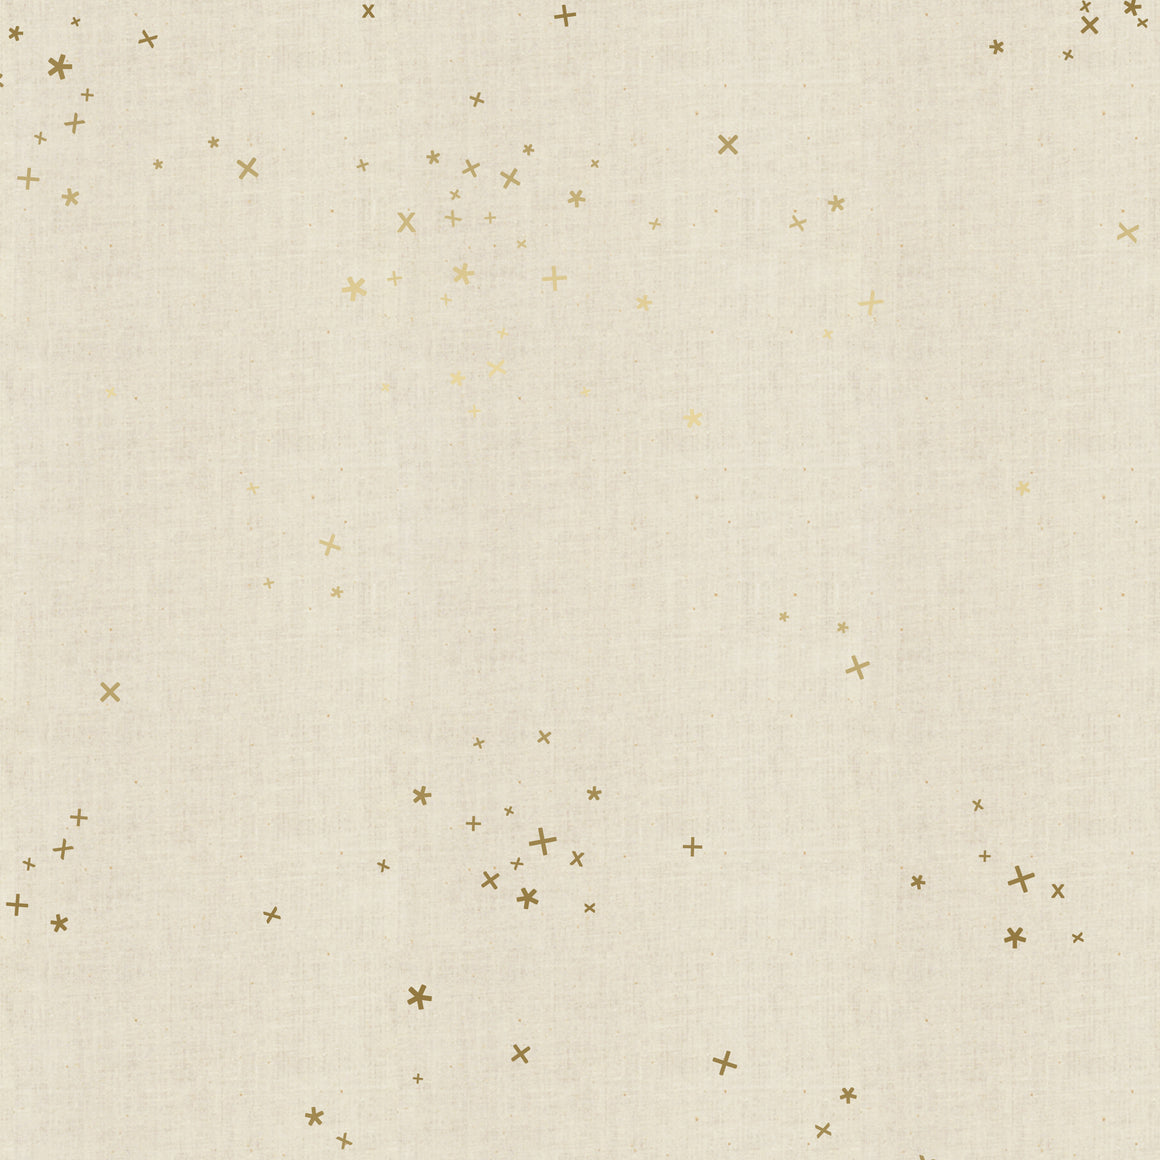 New C+S Basics: Freckles in Unbleached Metallic, Designer Fabric, Cotton + Steel, [variant_title] - Mad About Patchwork